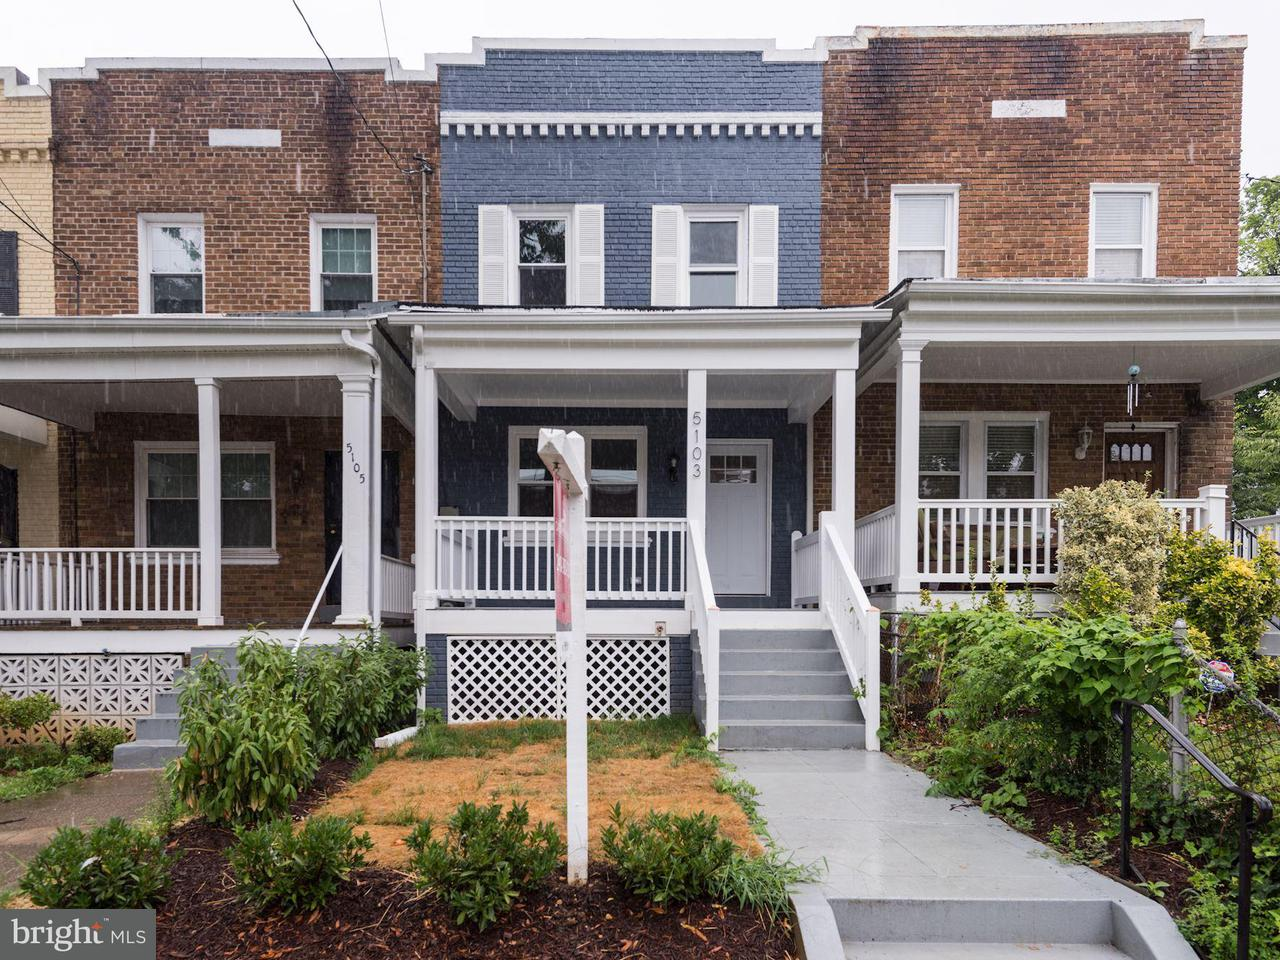 Townhouse for Sale at 5103 8TH ST NW 5103 8TH ST NW Washington, District Of Columbia 20011 United States